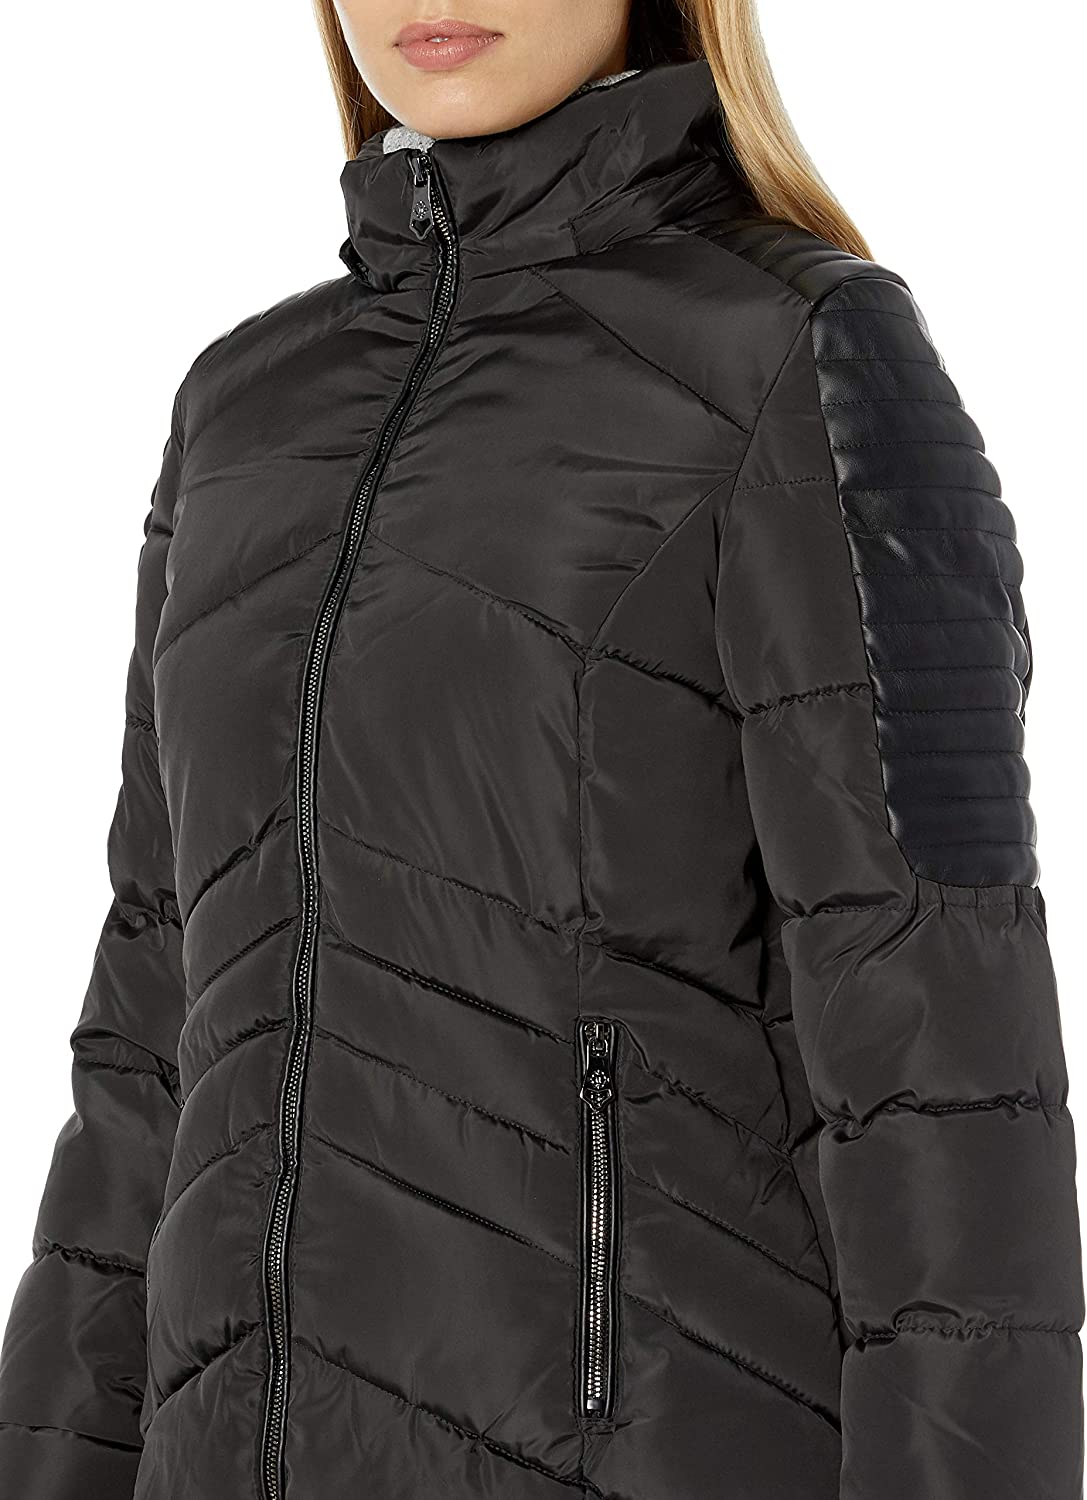 Nanette Lepore womens Puffer Coat With Faux Leather Details Down Alternative Coat